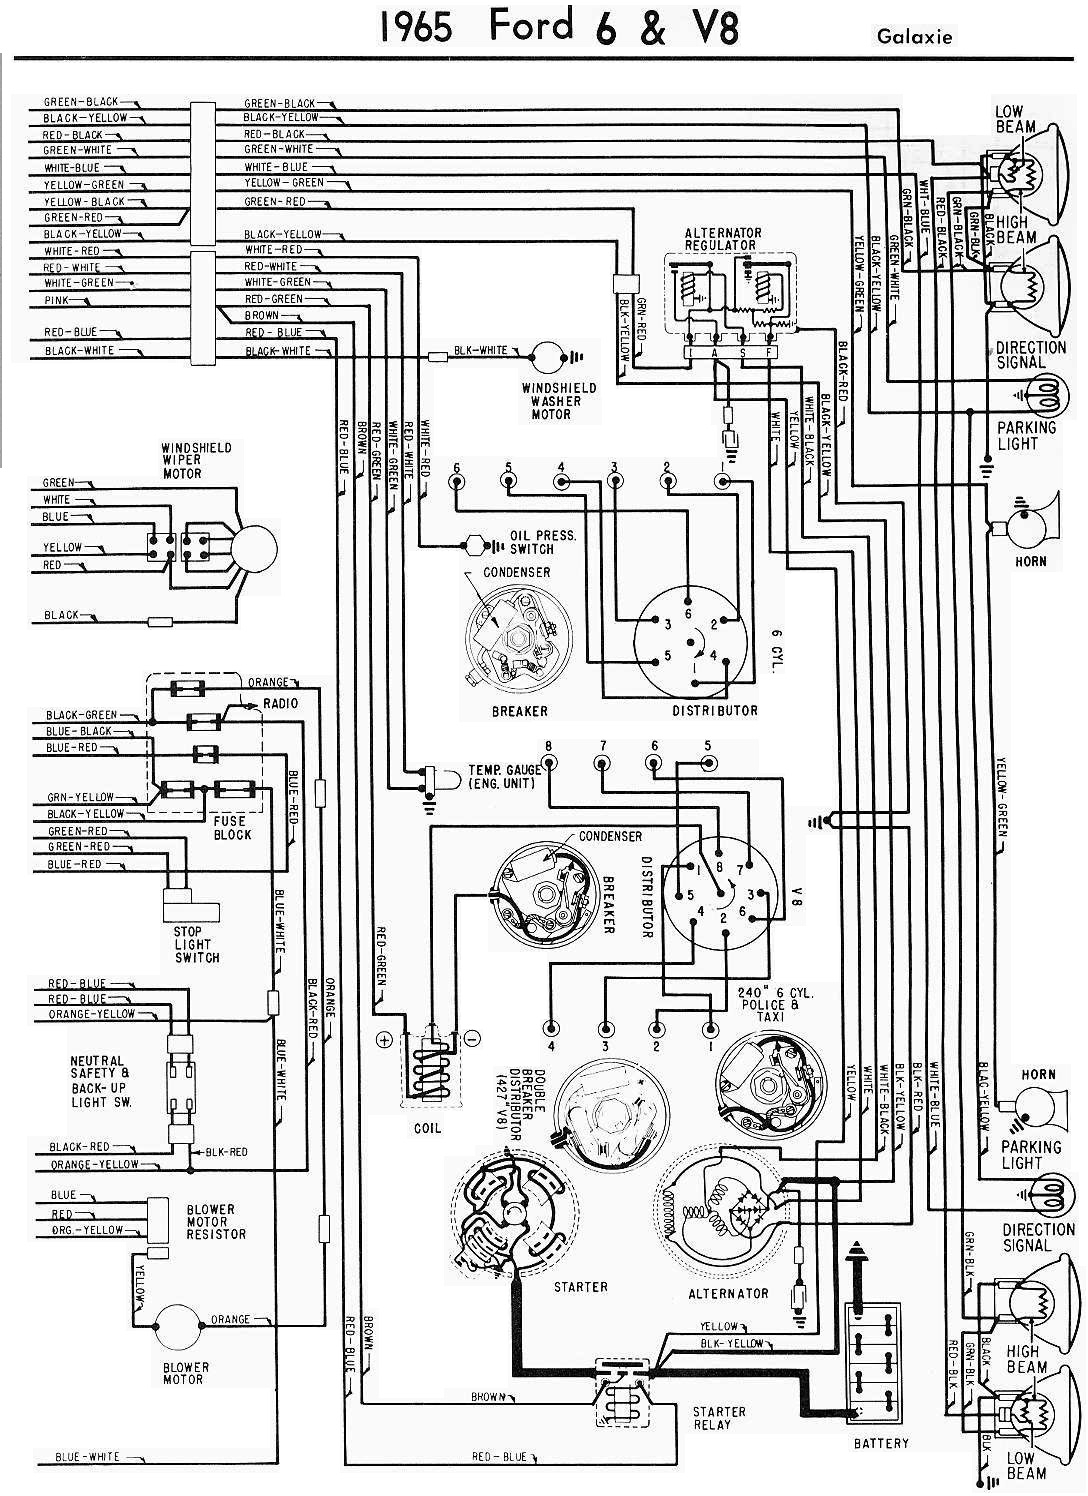 hight resolution of 1965 ford galaxie complete electrical wiring diagram part ford tractor ignition switch wiring 1956 ford wiring